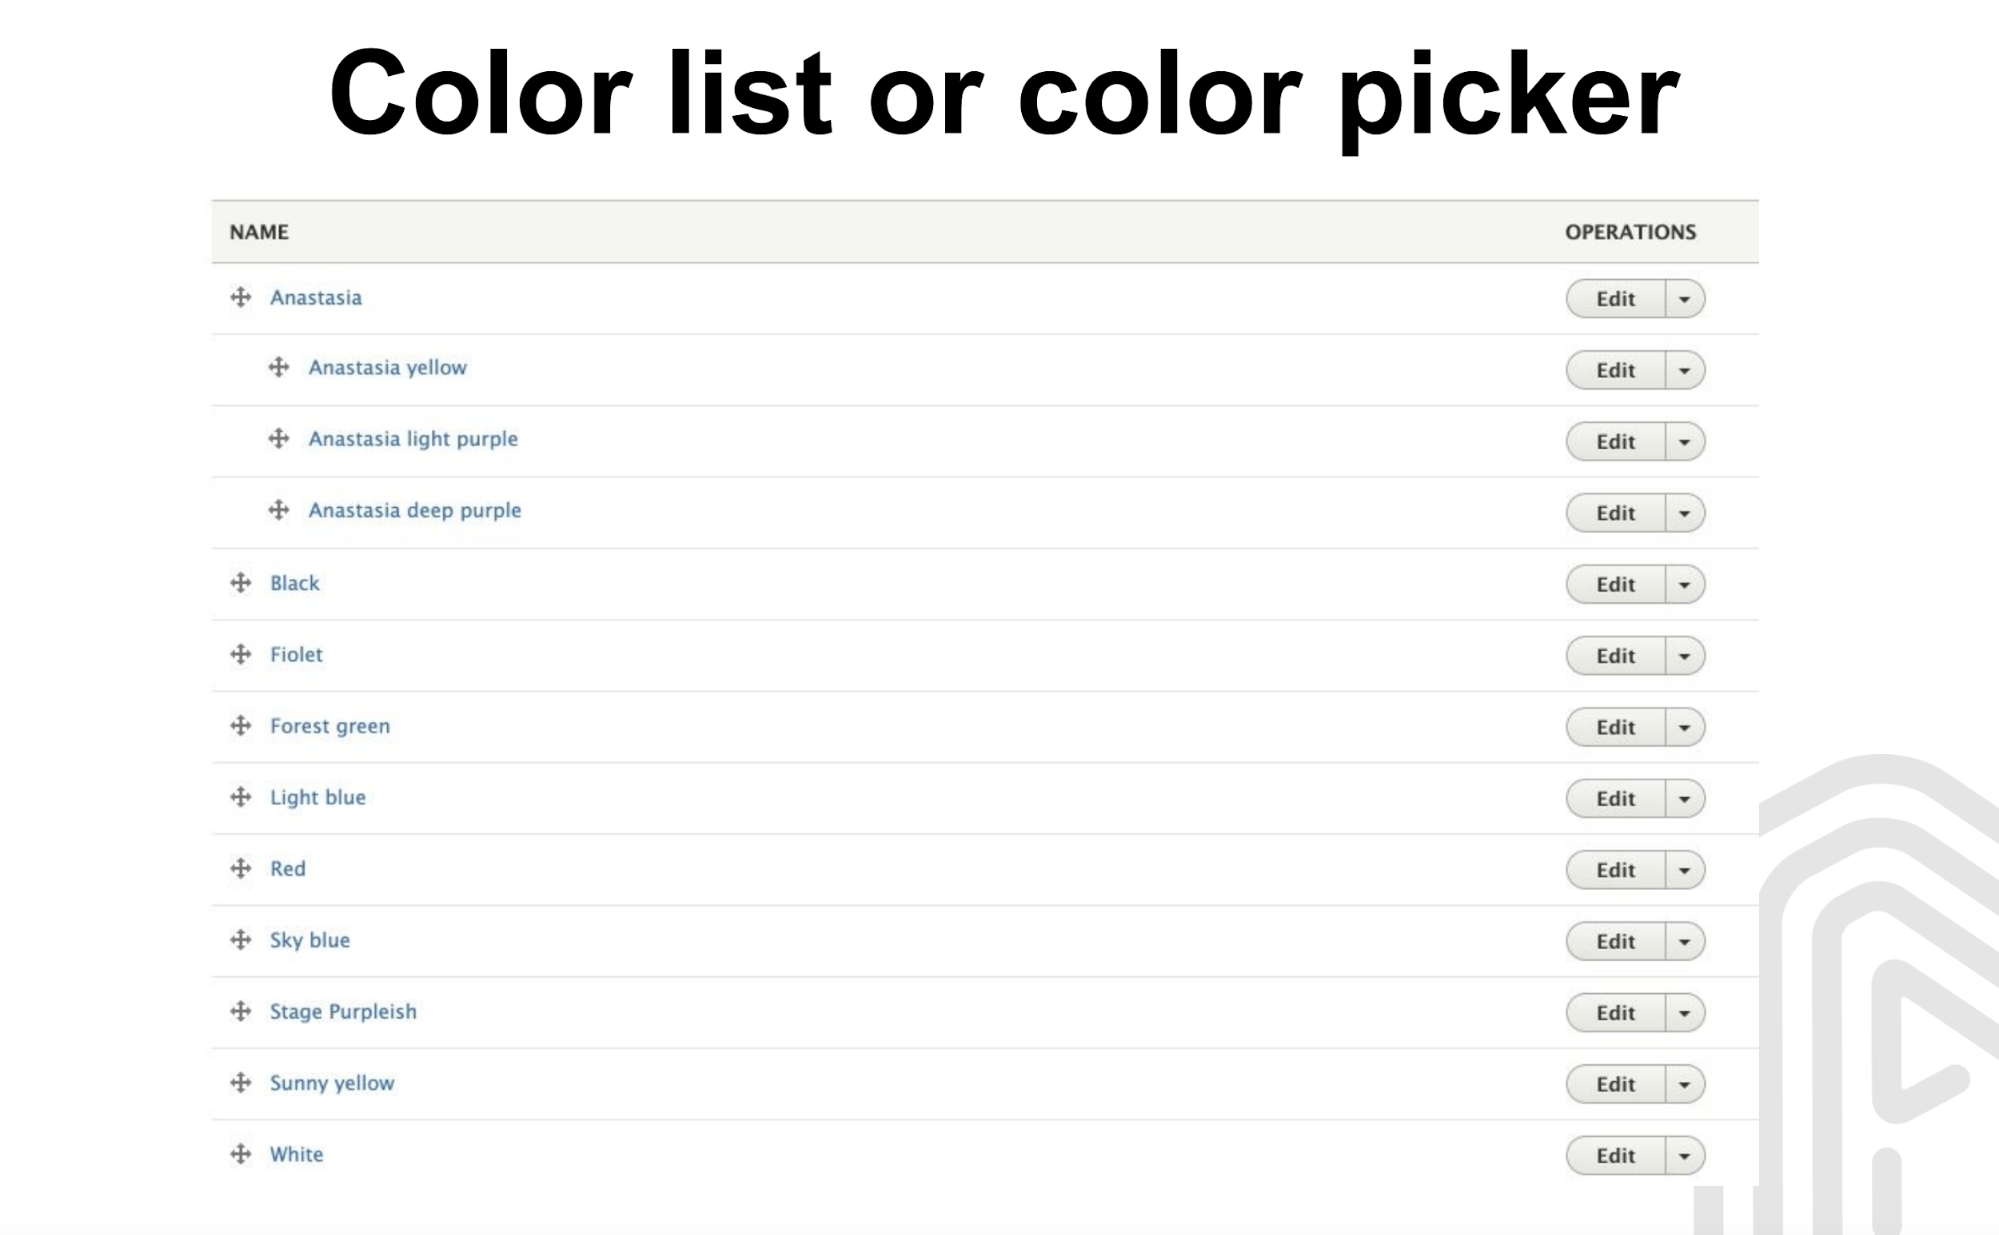 Color list